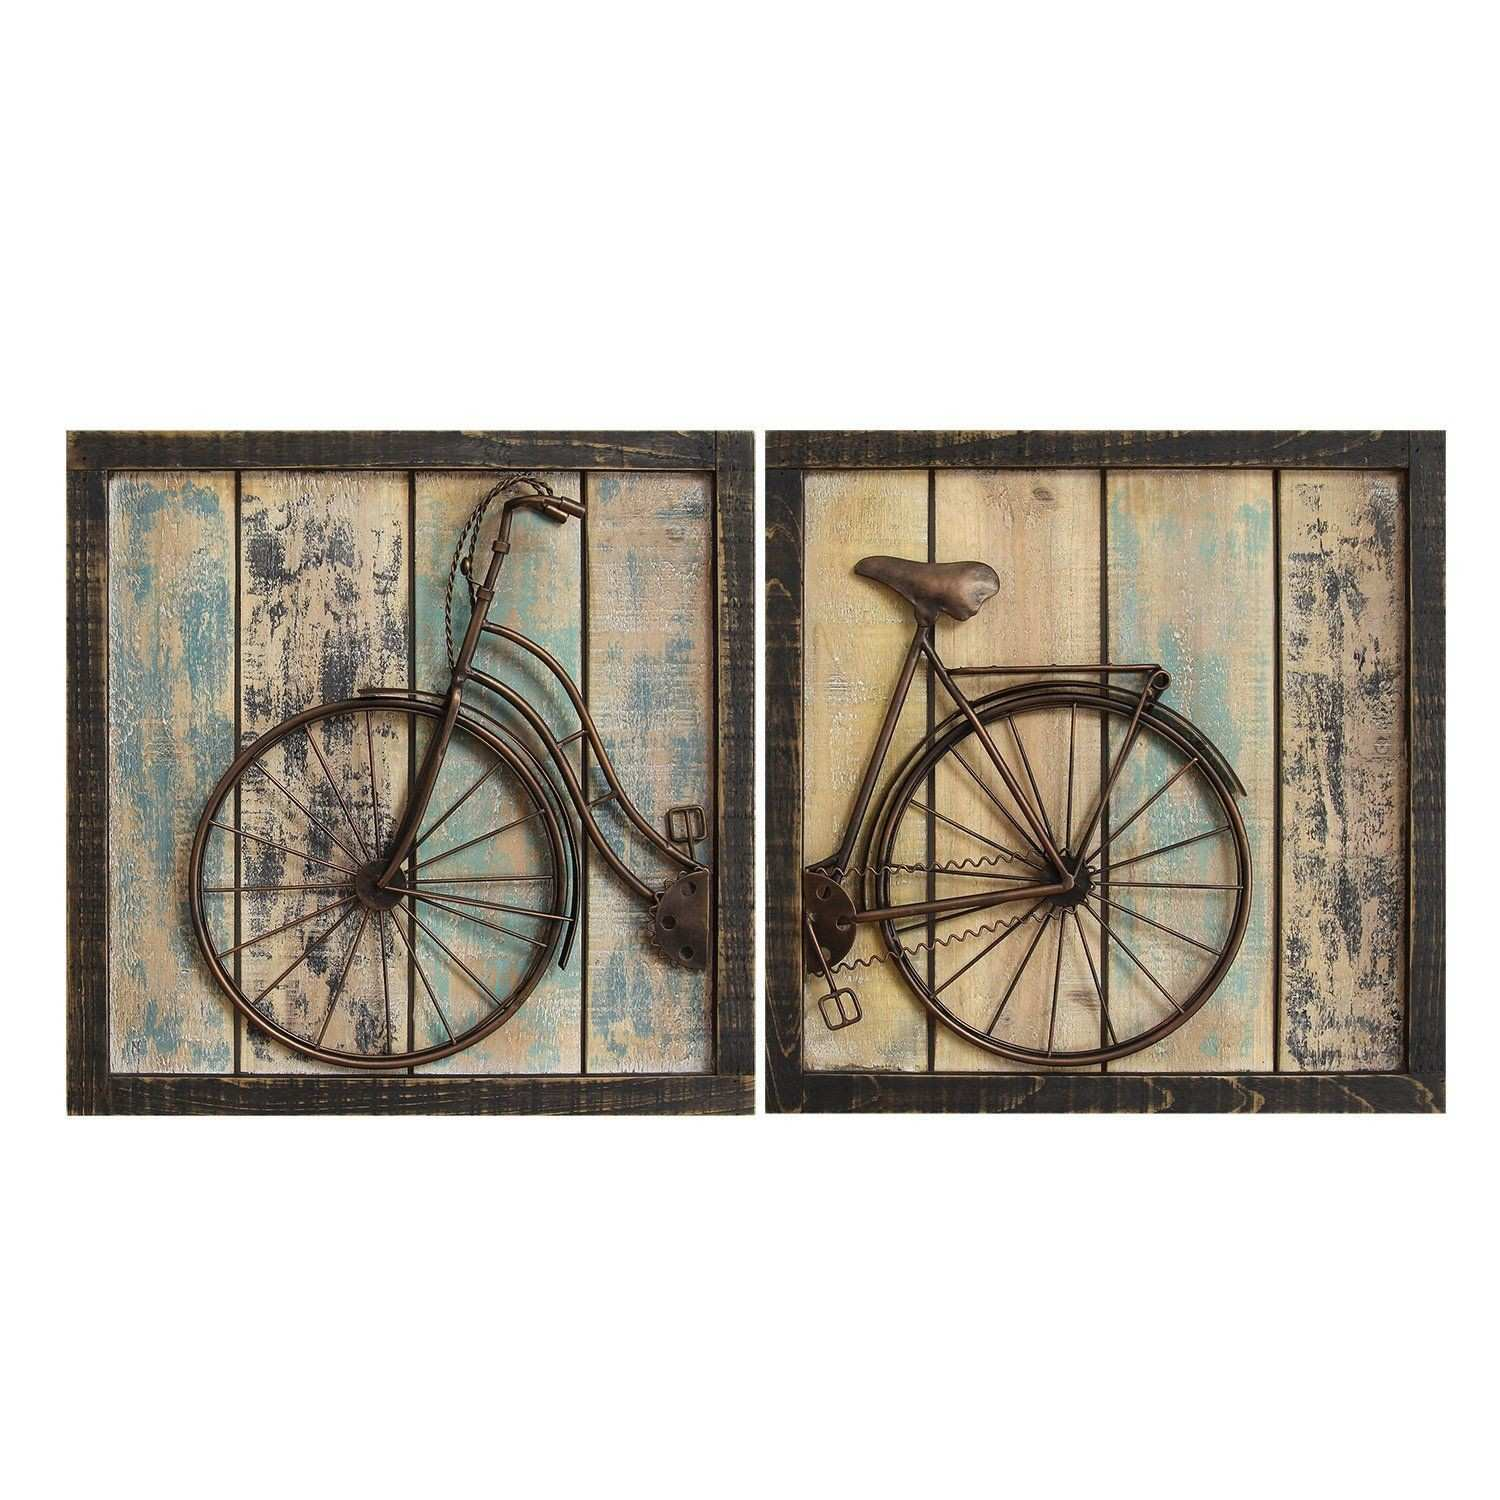 Gosport Antique Bicycle Wall Decor Panel Set 2 Design Bike